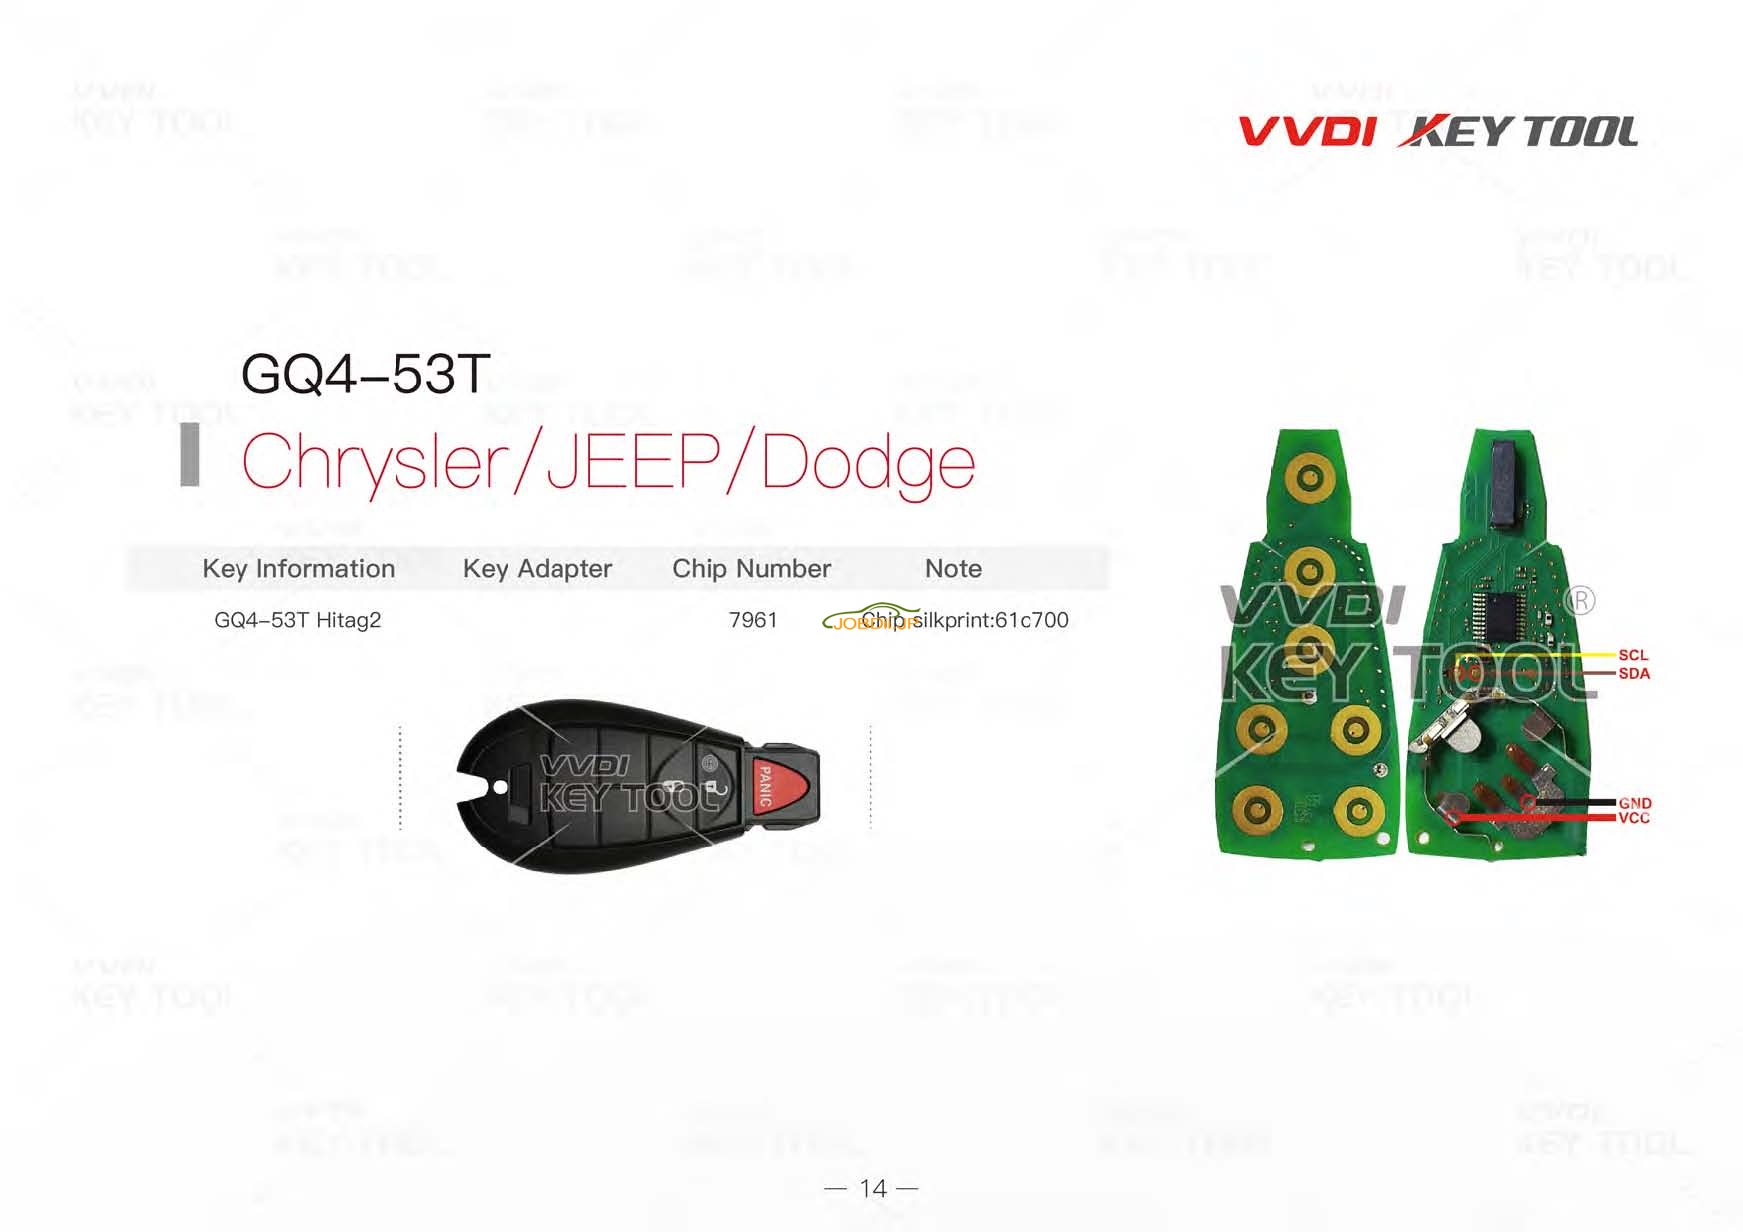 vvdi-key-tool-renew-diagram-14